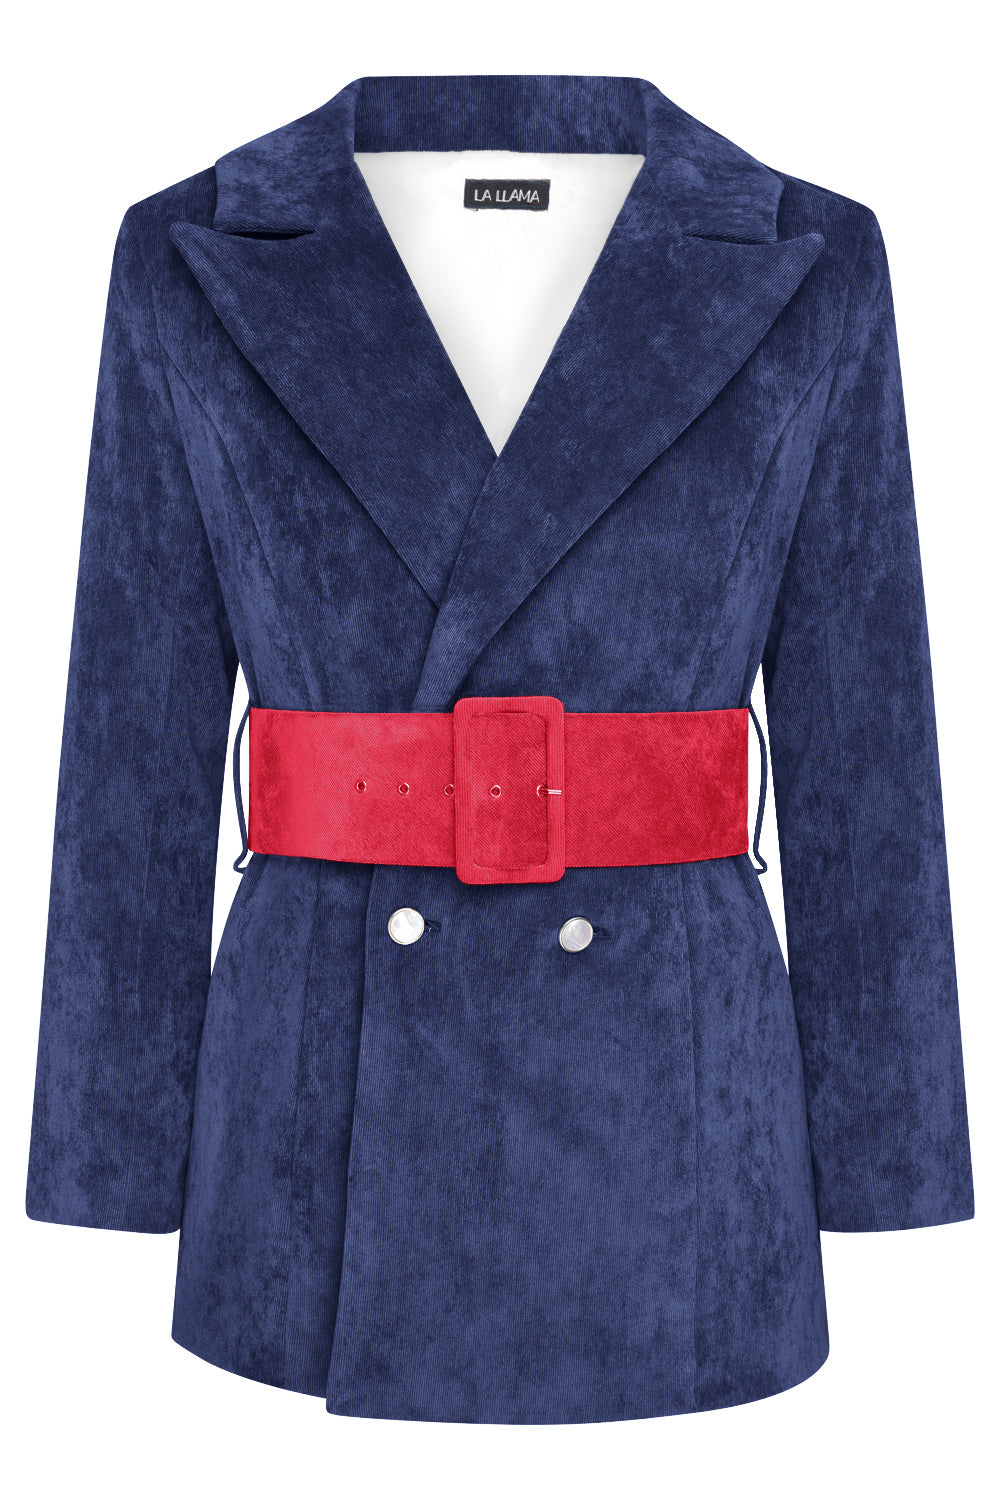 HYDRA BLAZER - NAVY WITH RED BELT